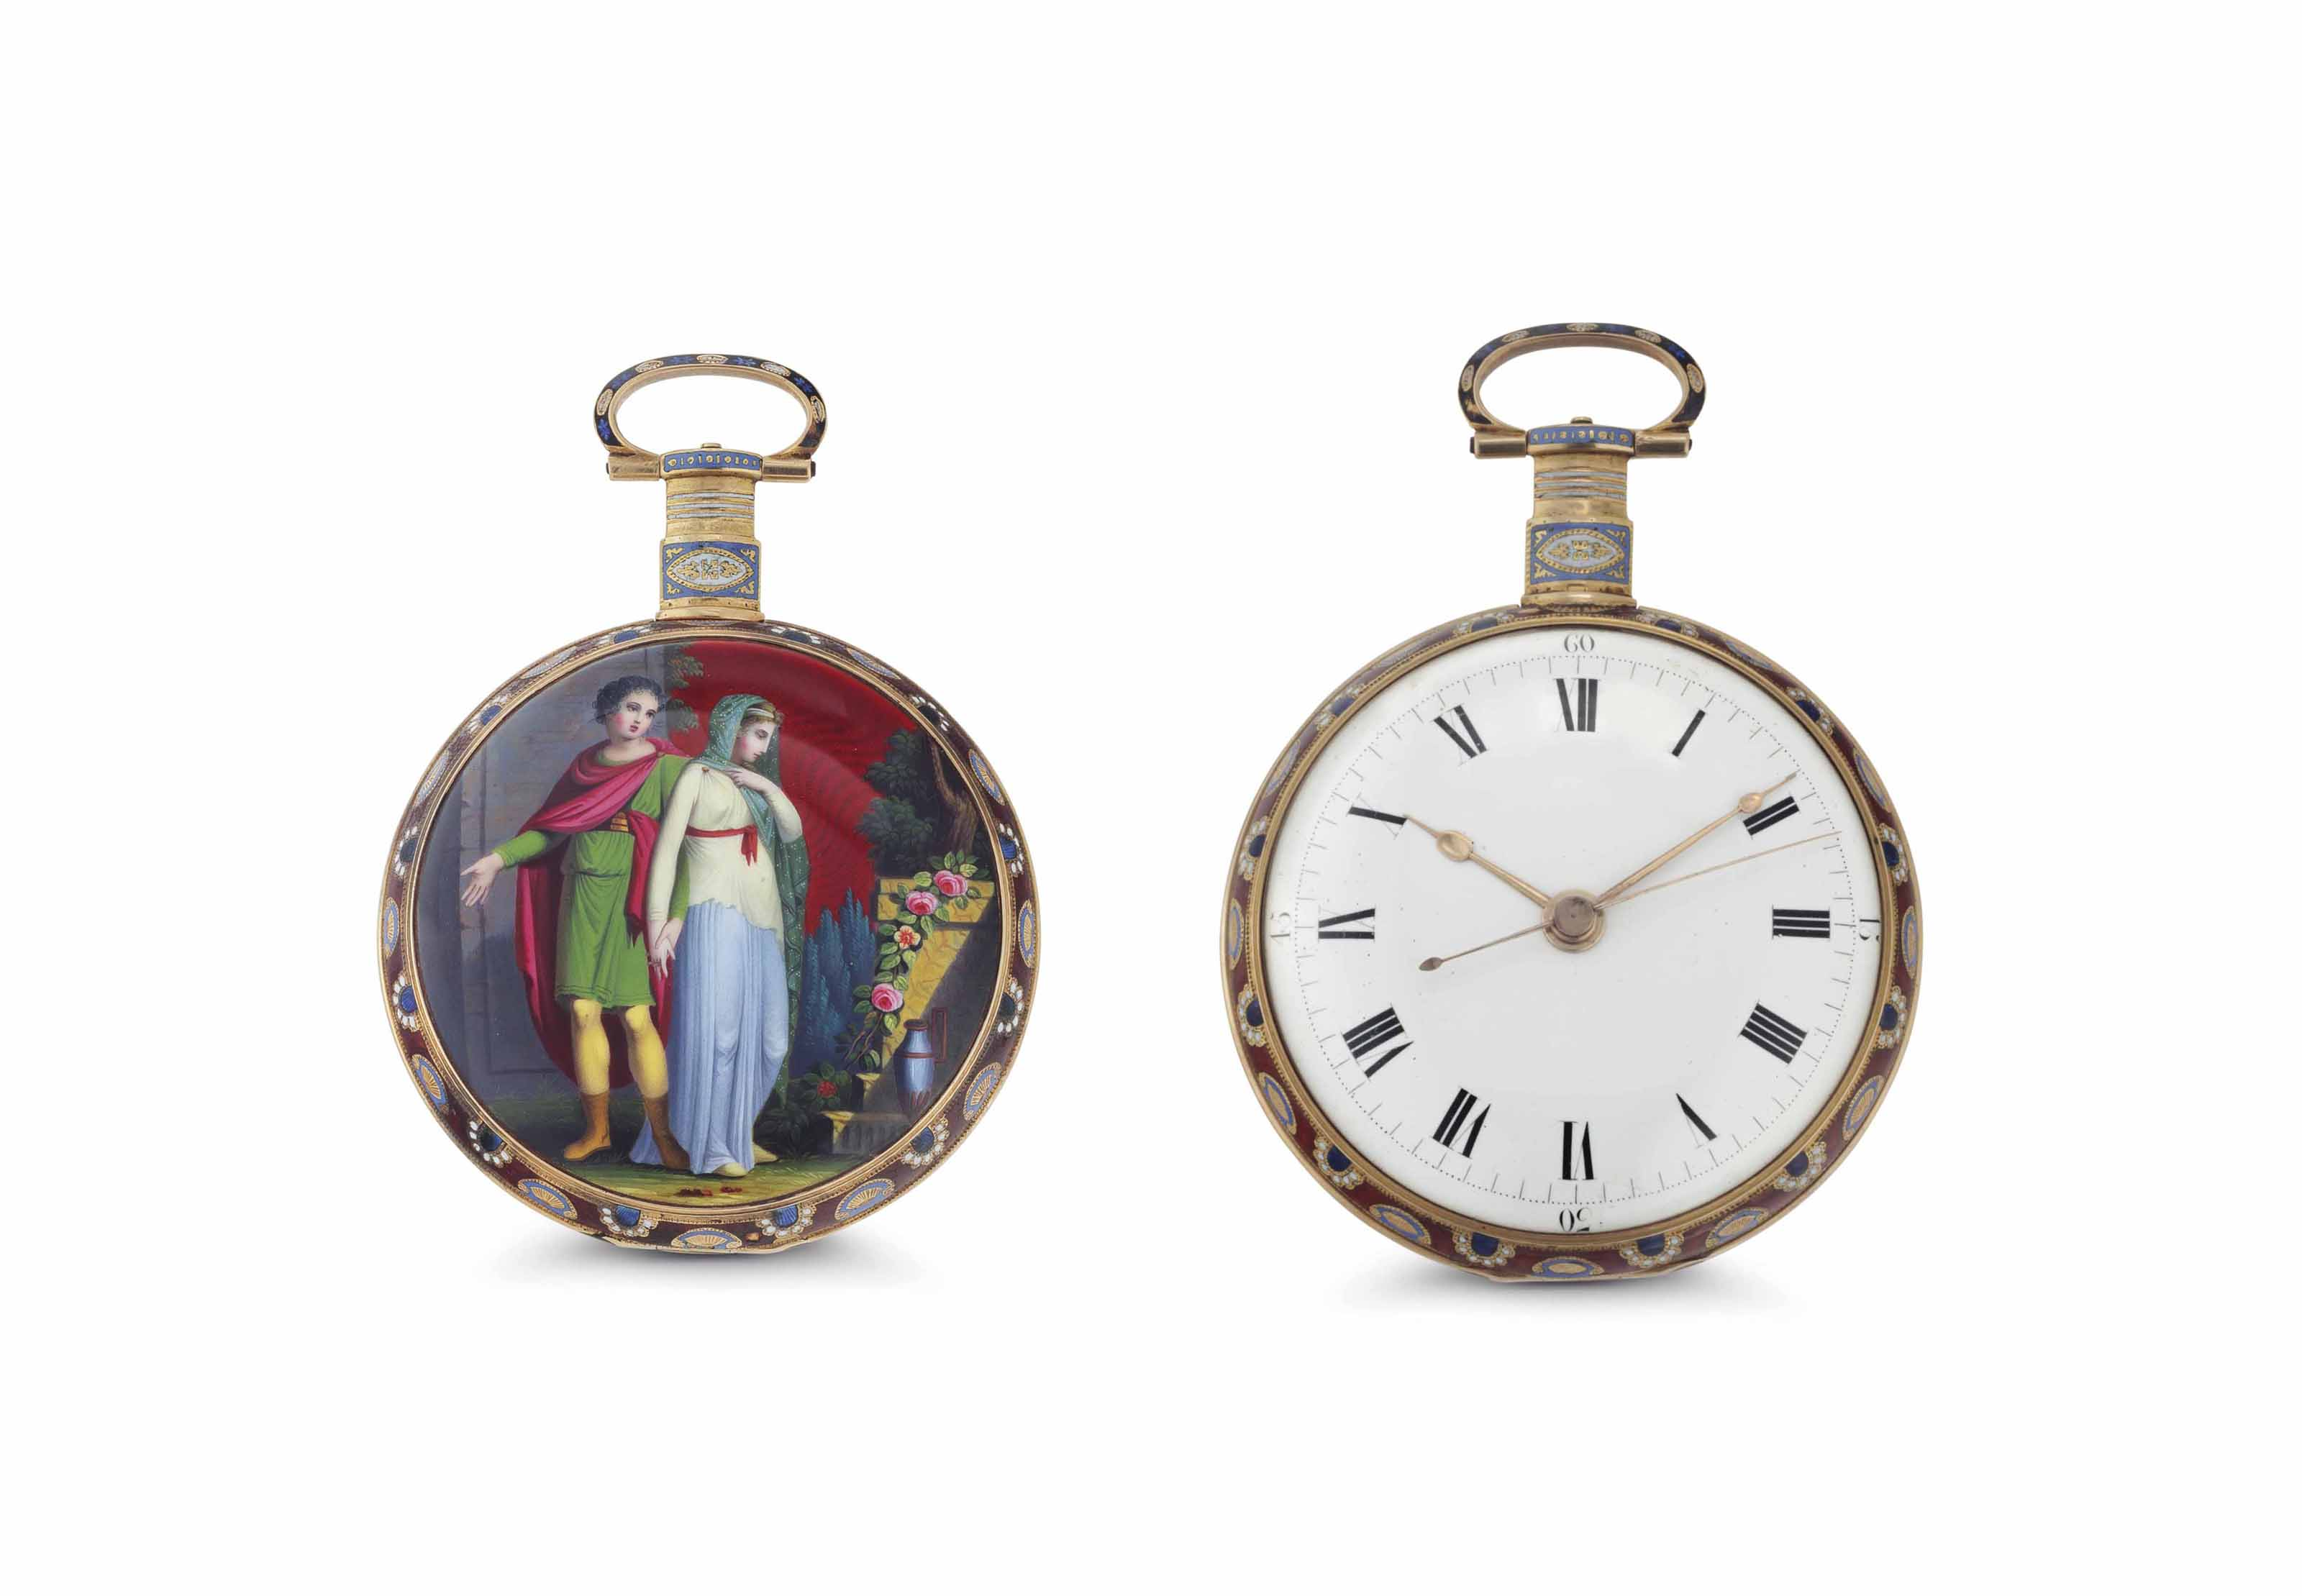 Ilbery. An Exceptional 18K Gold and Enamel Openface Center Seconds Duplex Watch Made for the Chinese Market